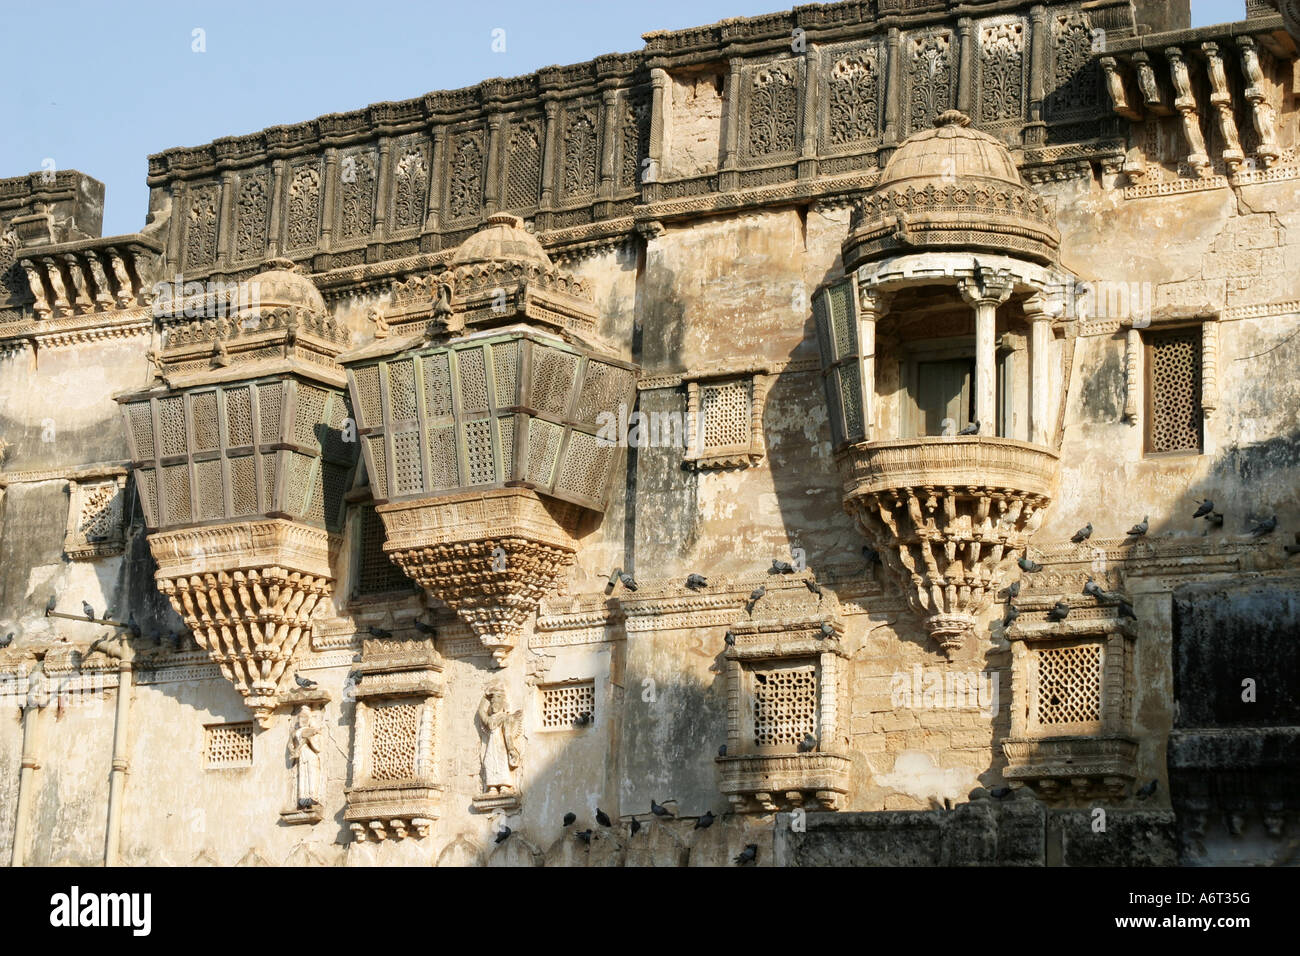 Example Of The Earthquake Damage To The Darbargadh Palace At Bhuj